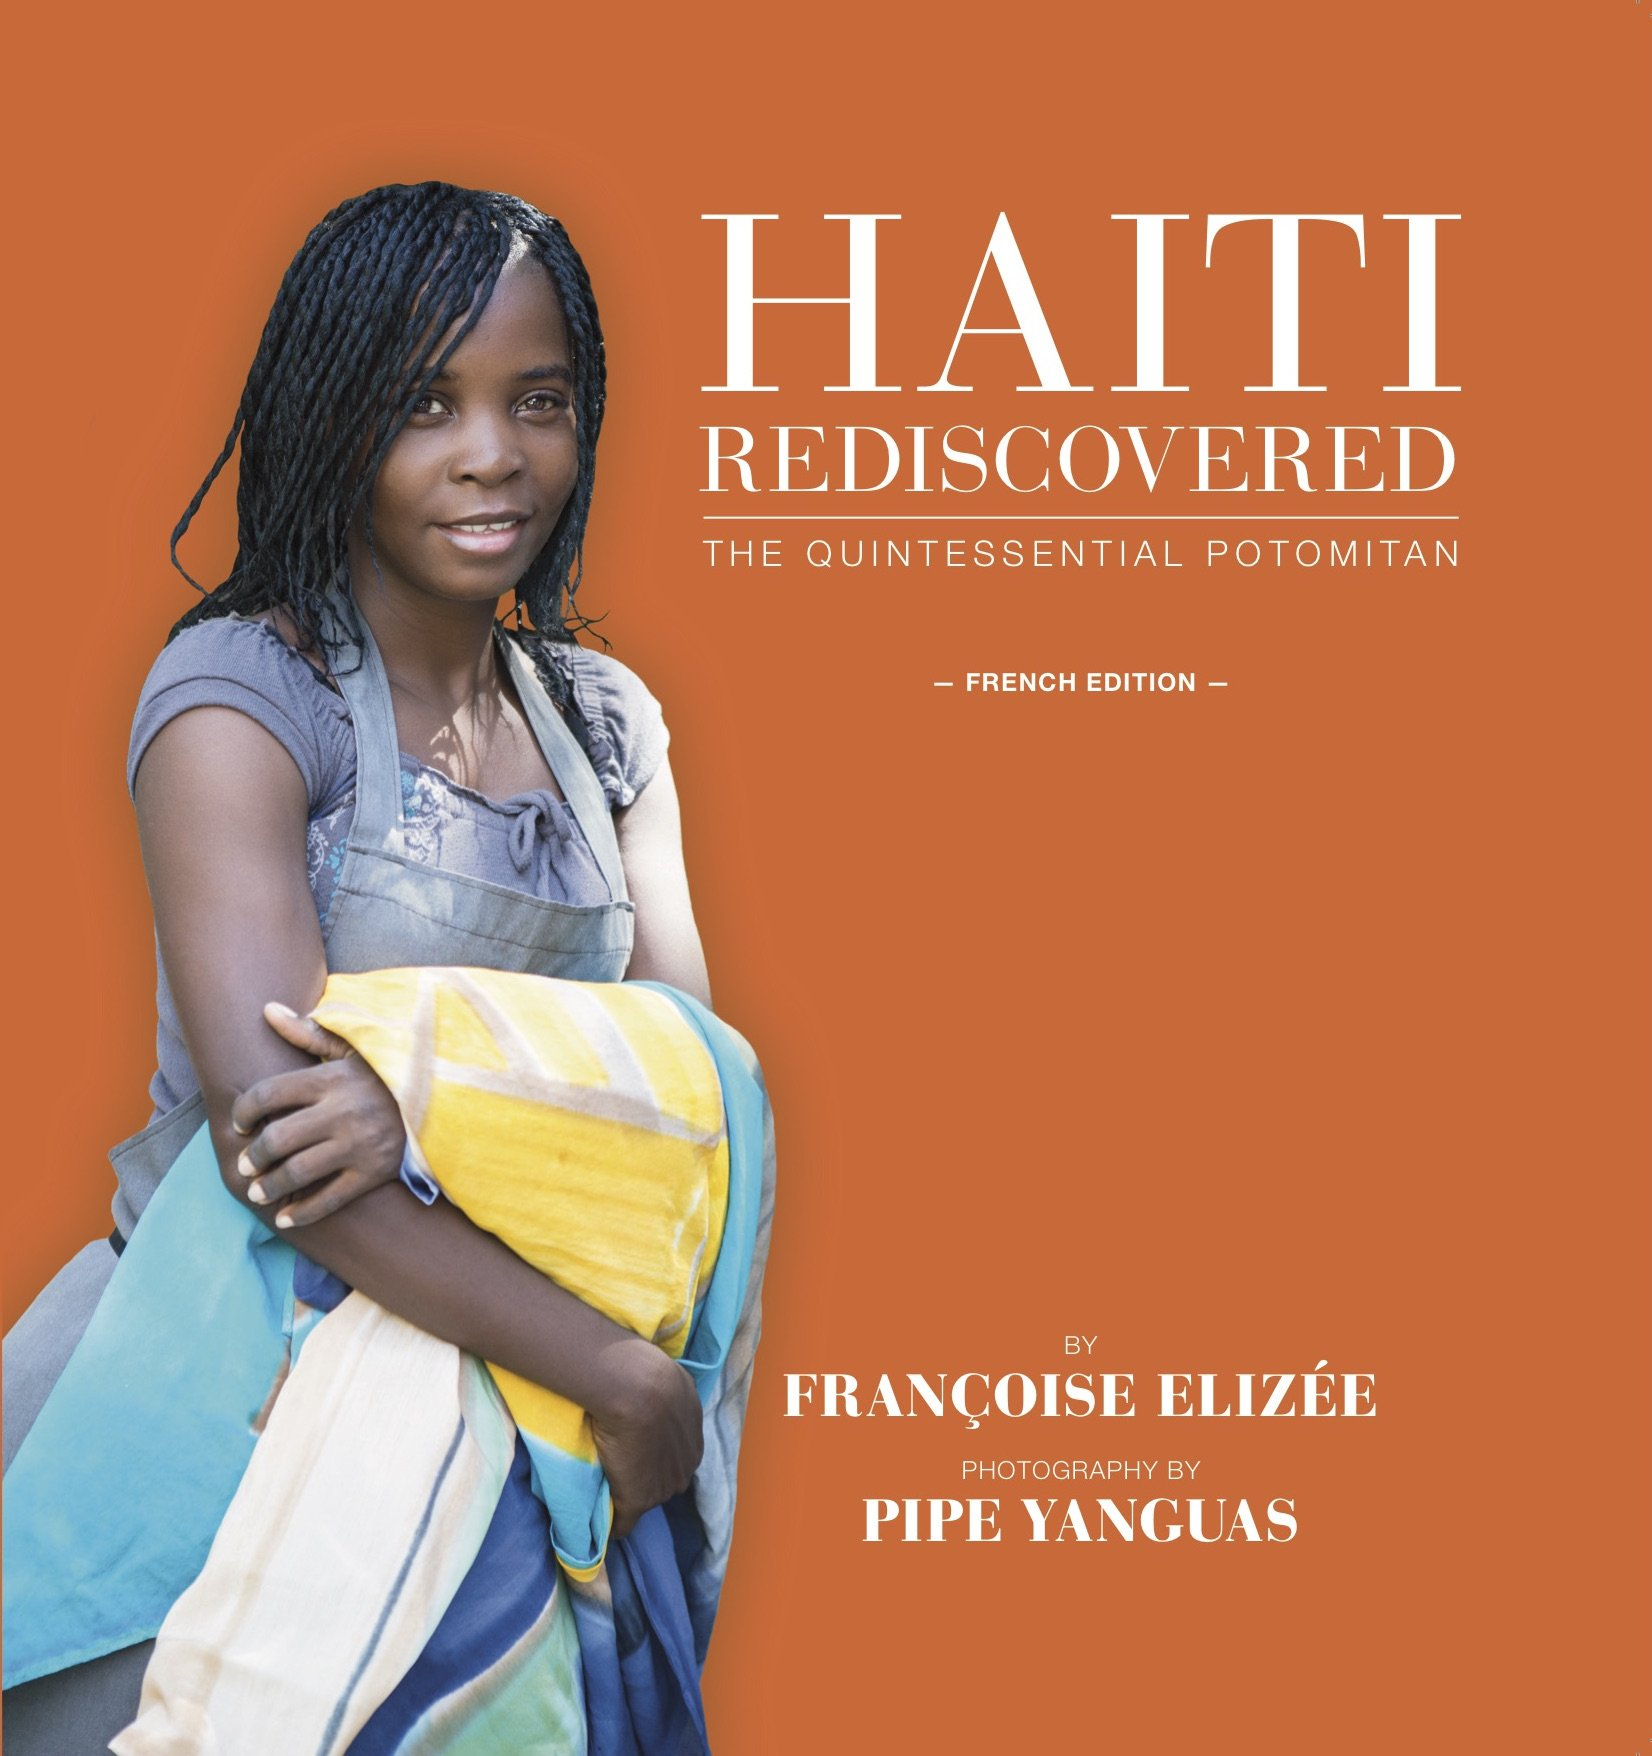 Haiti Rediscovered - The Quintessential Potomitan (French Edition)